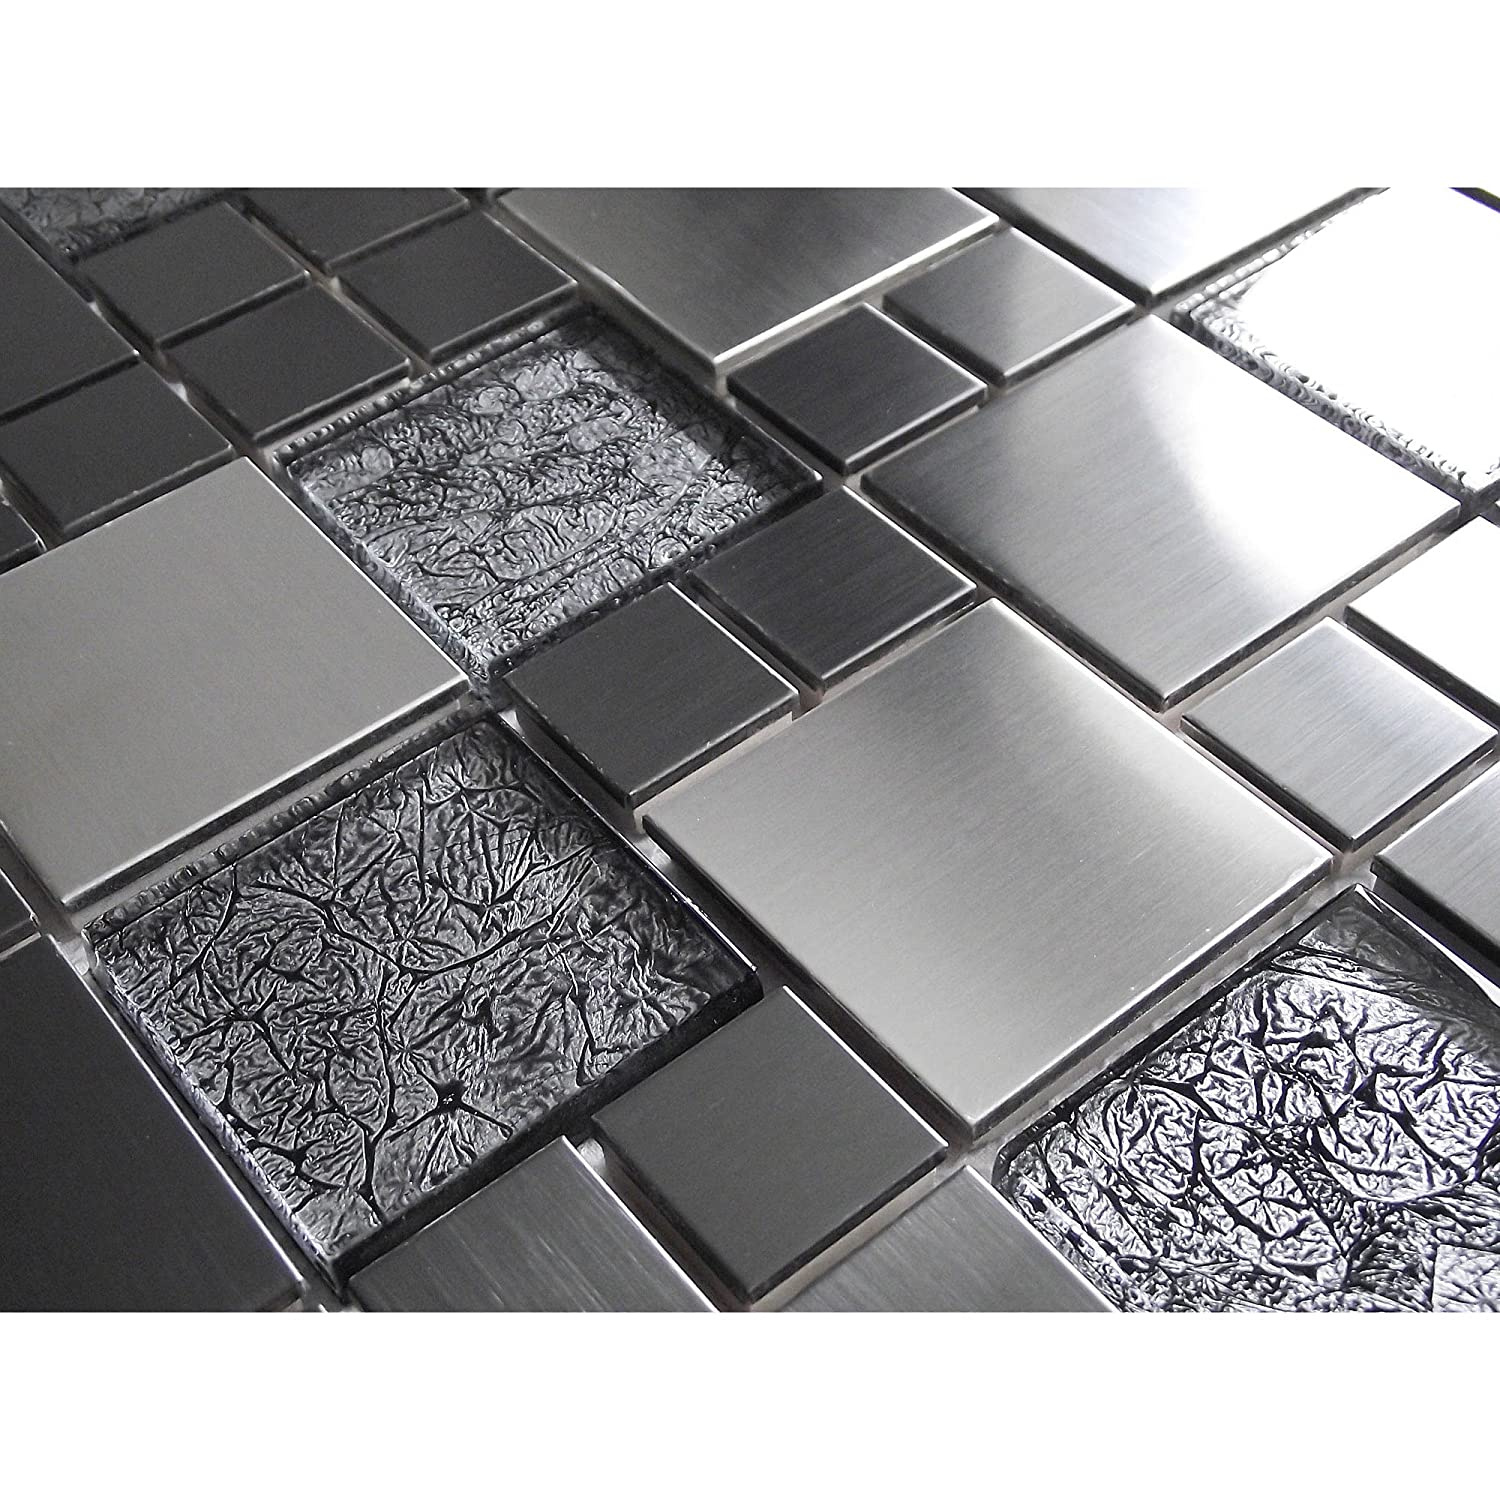 New Brushed Steel Silver Metal & Foil Backed Glass Luxury Mosaic Tiles. Household Discount